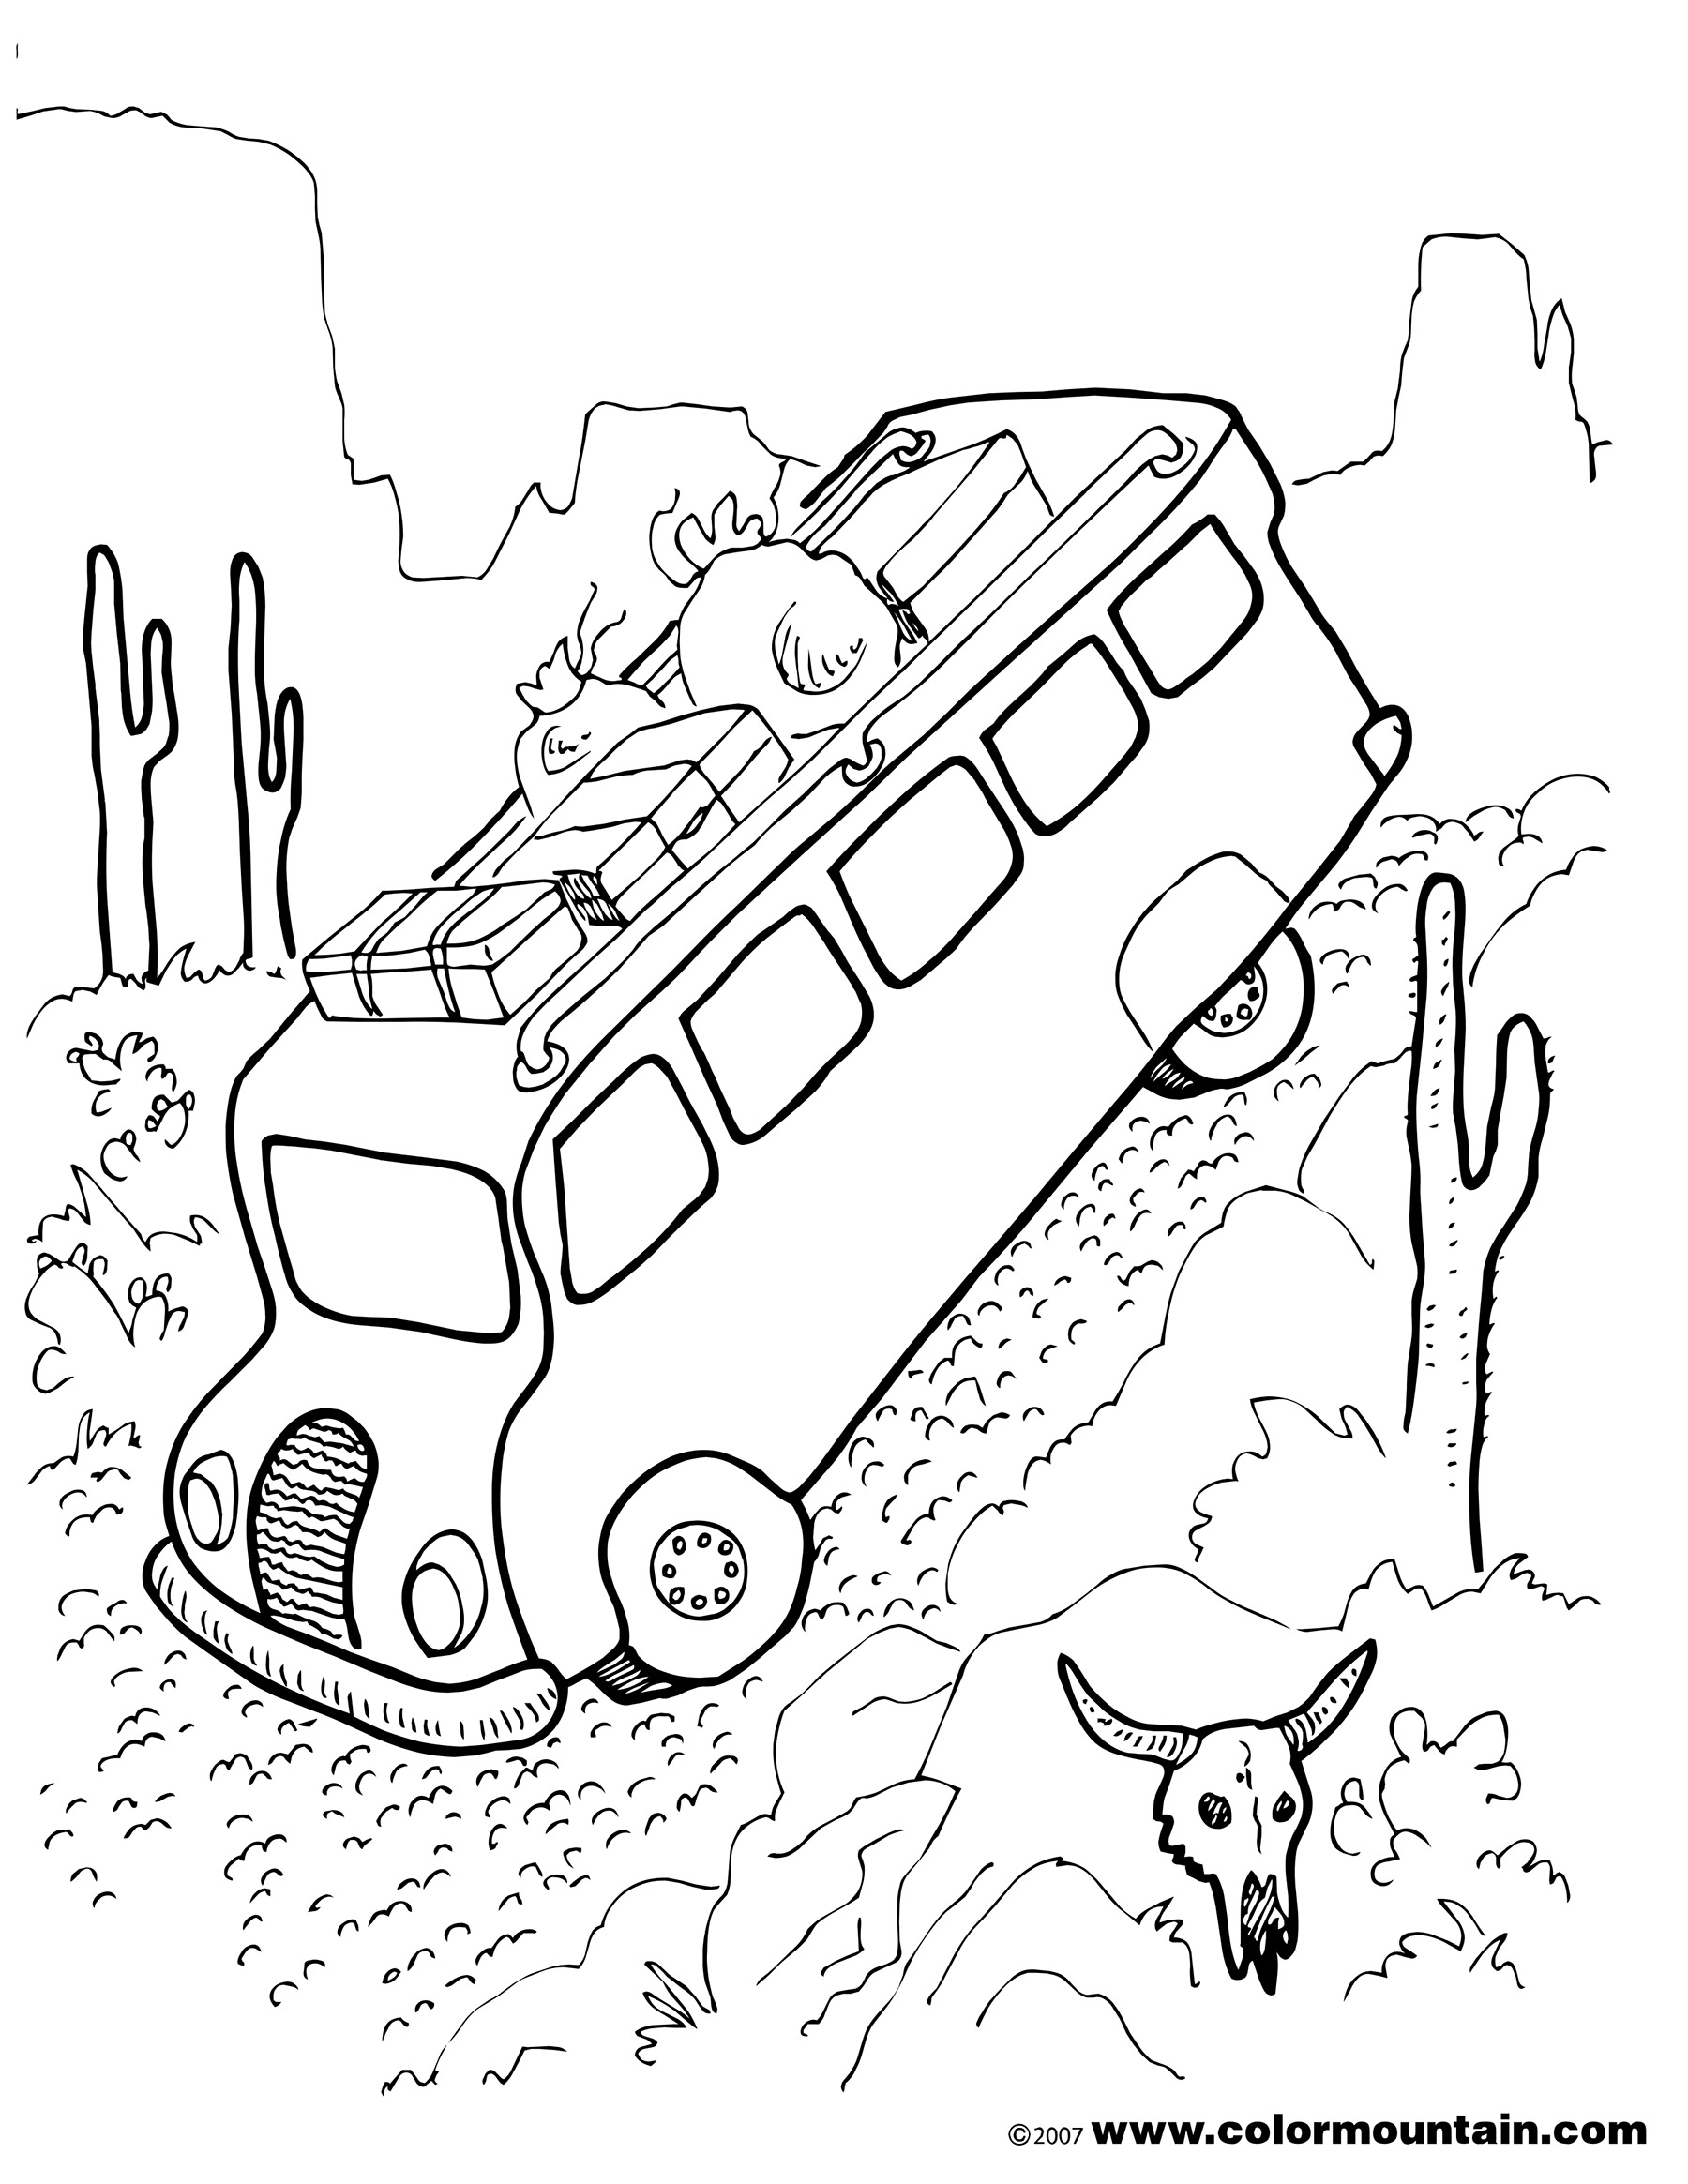 beachfront coloring pages - photo#41